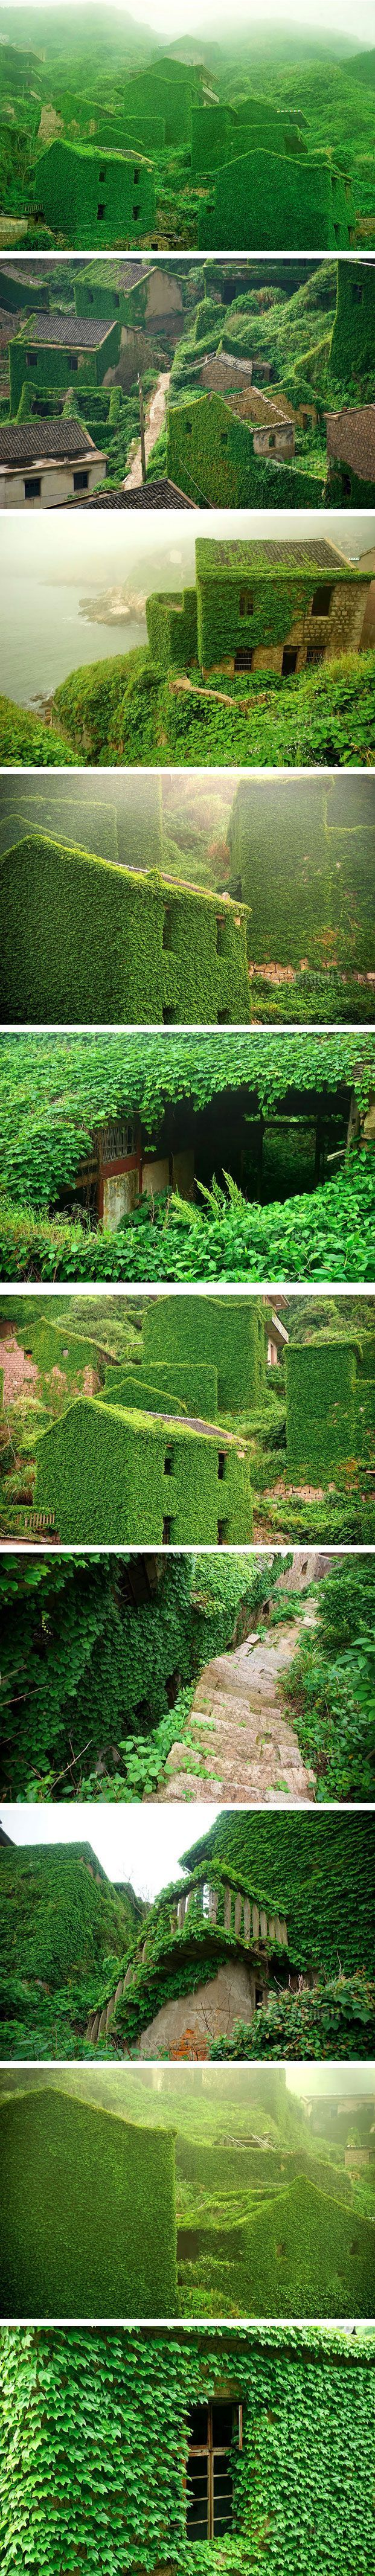 Shengsi, an archipelago of almost 400 islands at the mouth of China's Yangtze river, holds a secret shrouded in time – an abandoned fishing village being reclaimed by nature. These photos by Tang Yuho (Beauty Art Lost)